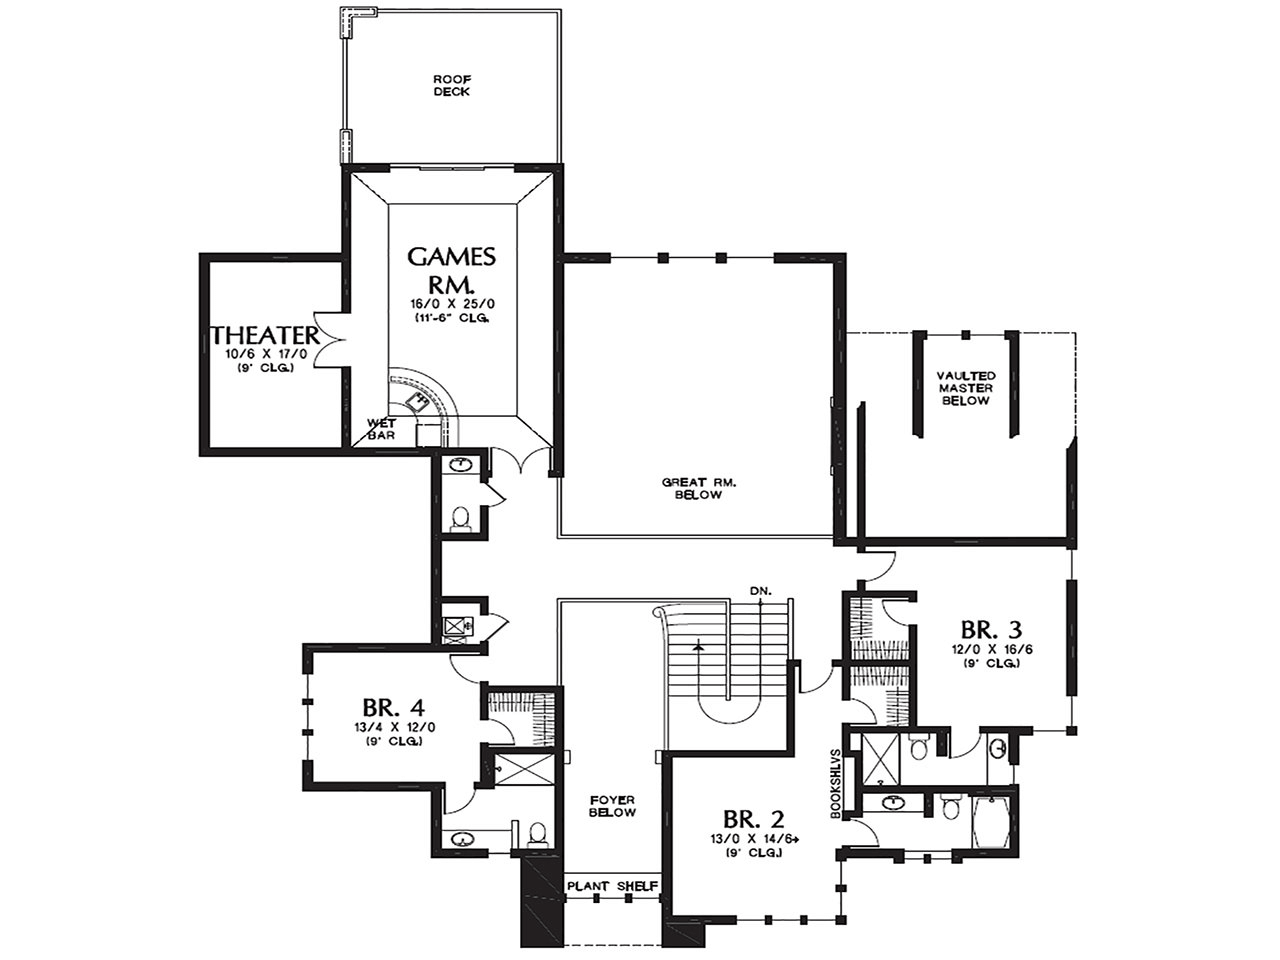 p2-the-rutledge-upper-floor-r-c